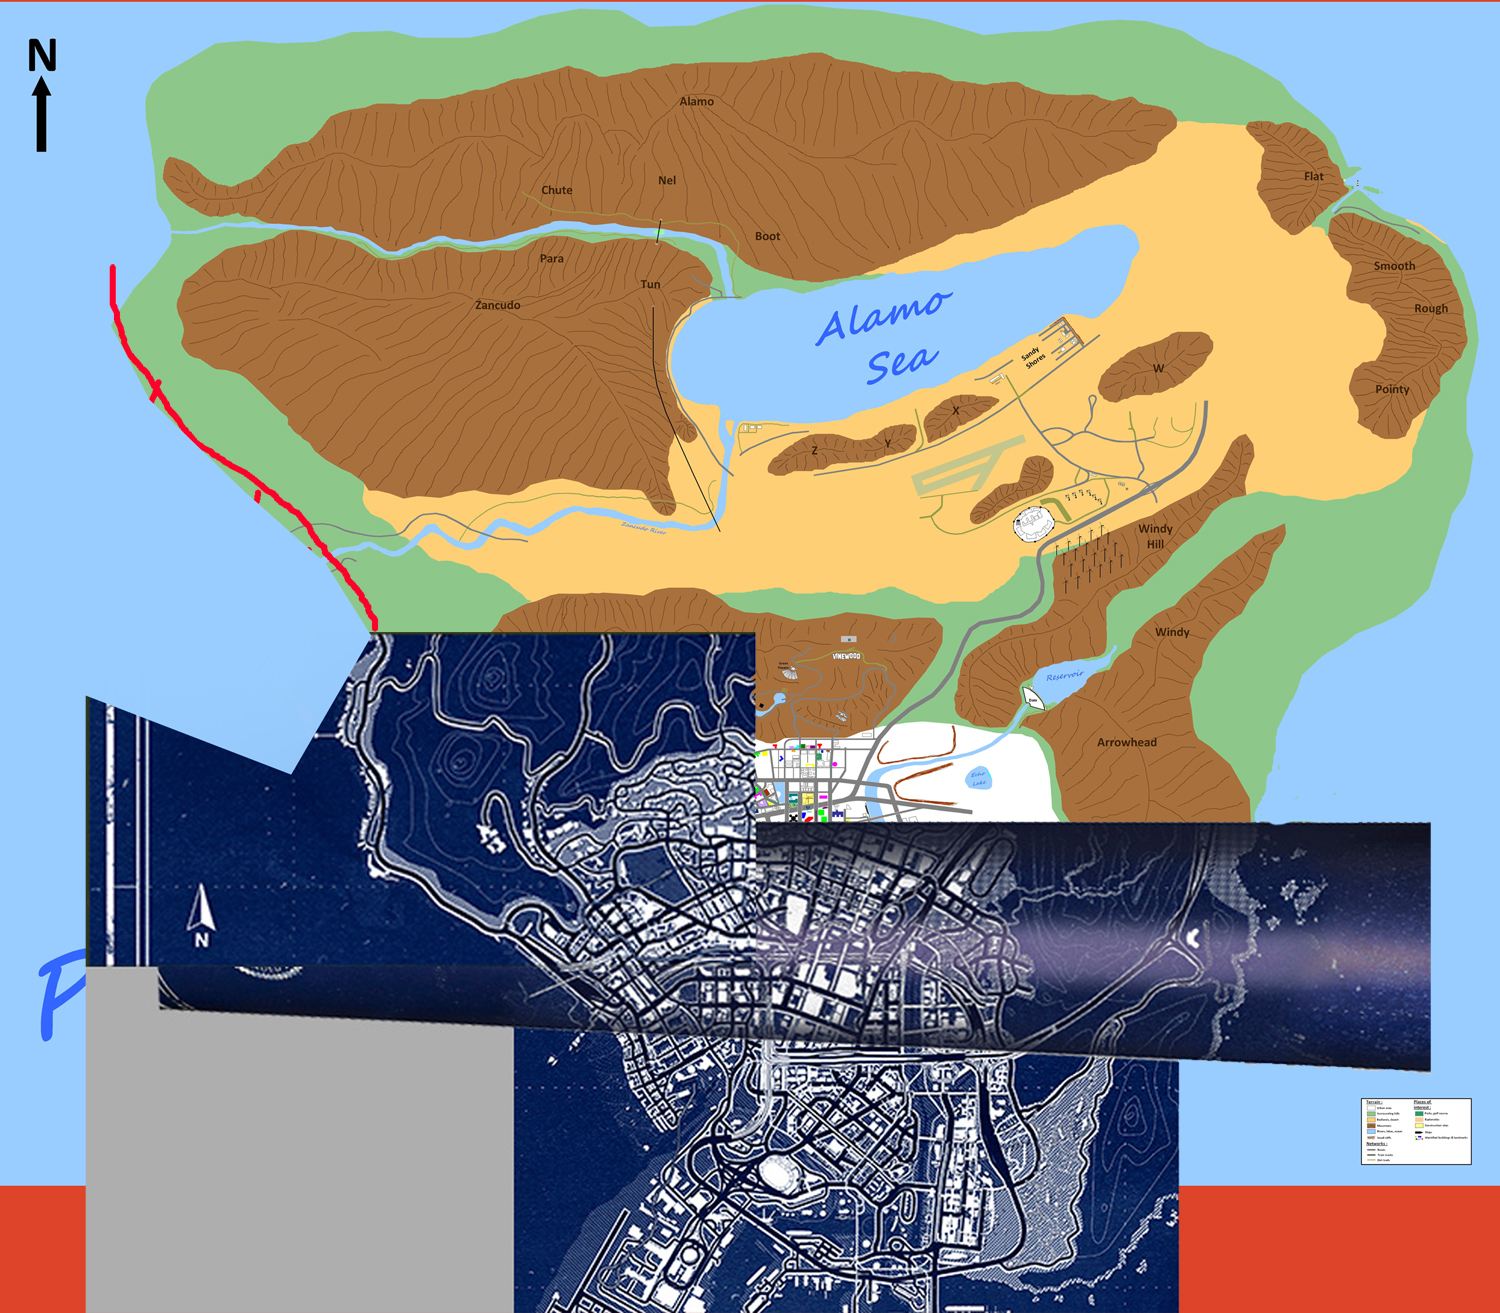 Gta 5 Map Leak i thought this map was...